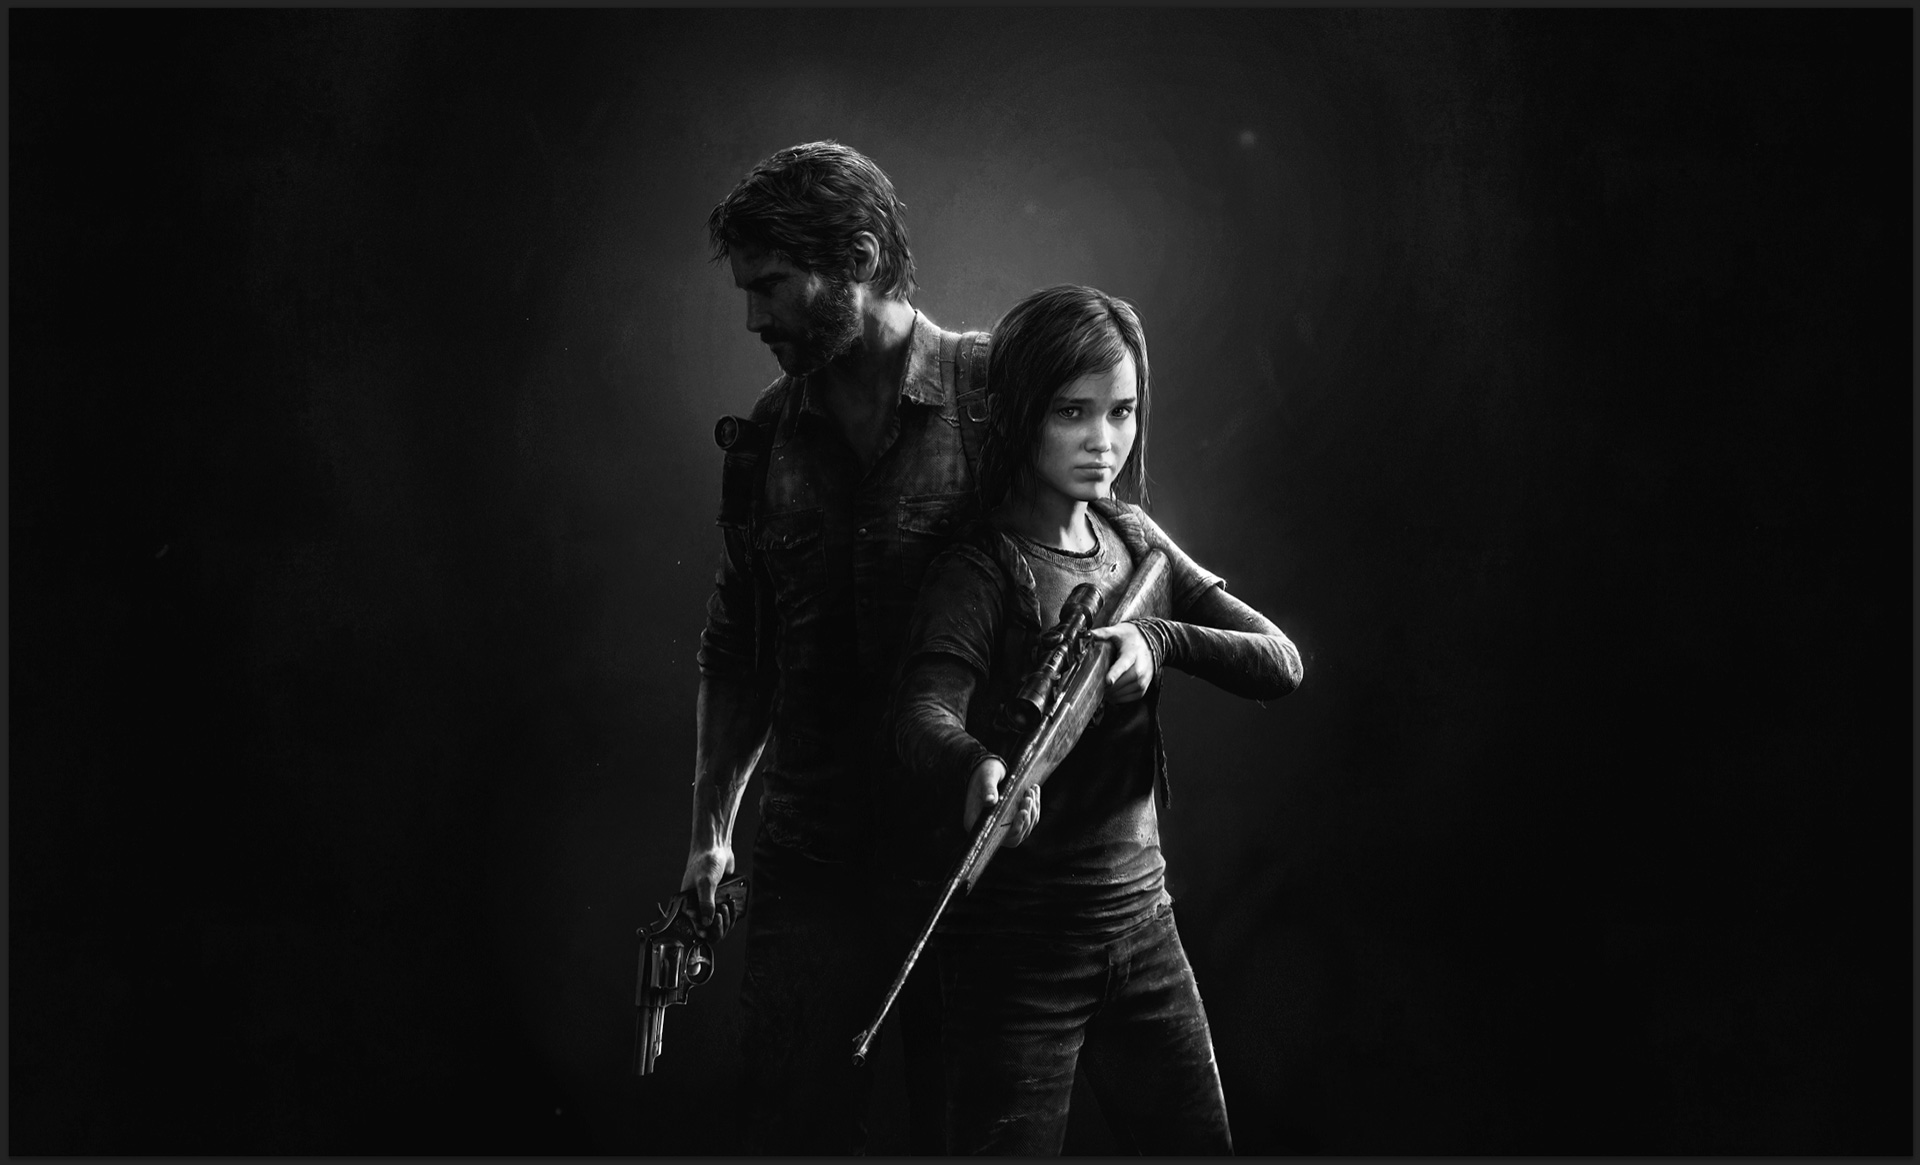 The Last of Us Remastered is a stunning visual masterpiece